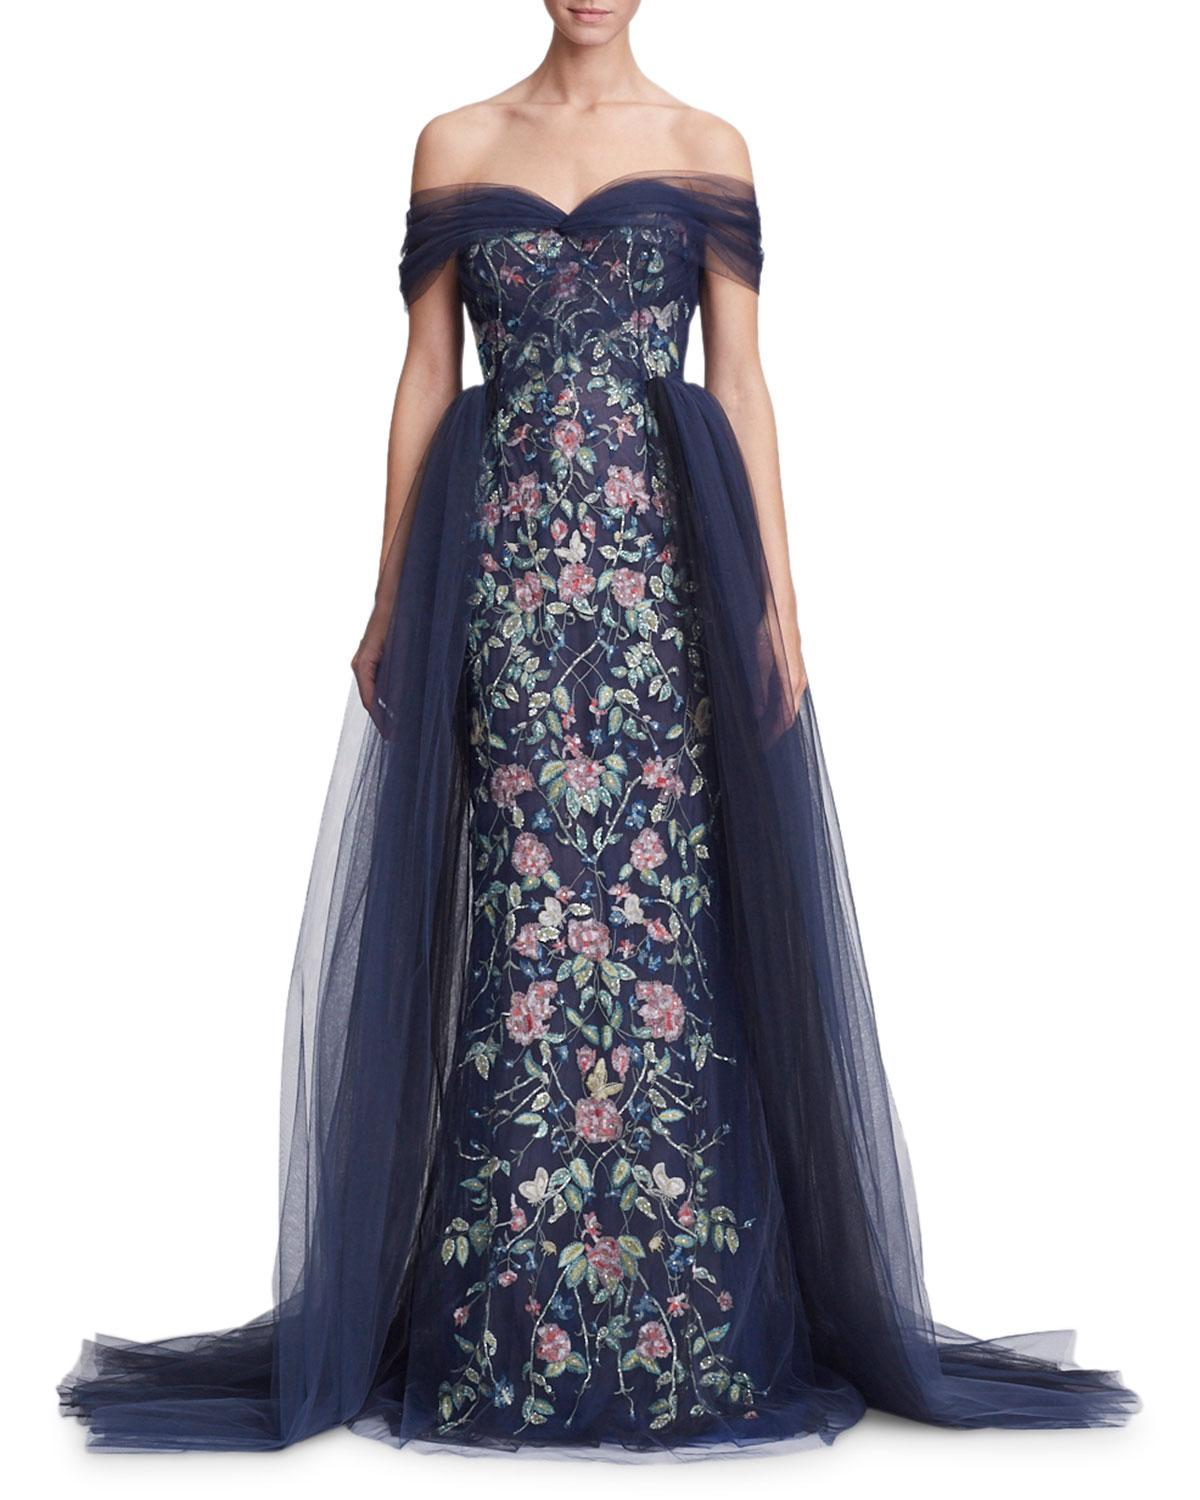 e66d989d51 Marchesa Off-the-shoulder Floral Tulle Evening Gown in Blue - Lyst